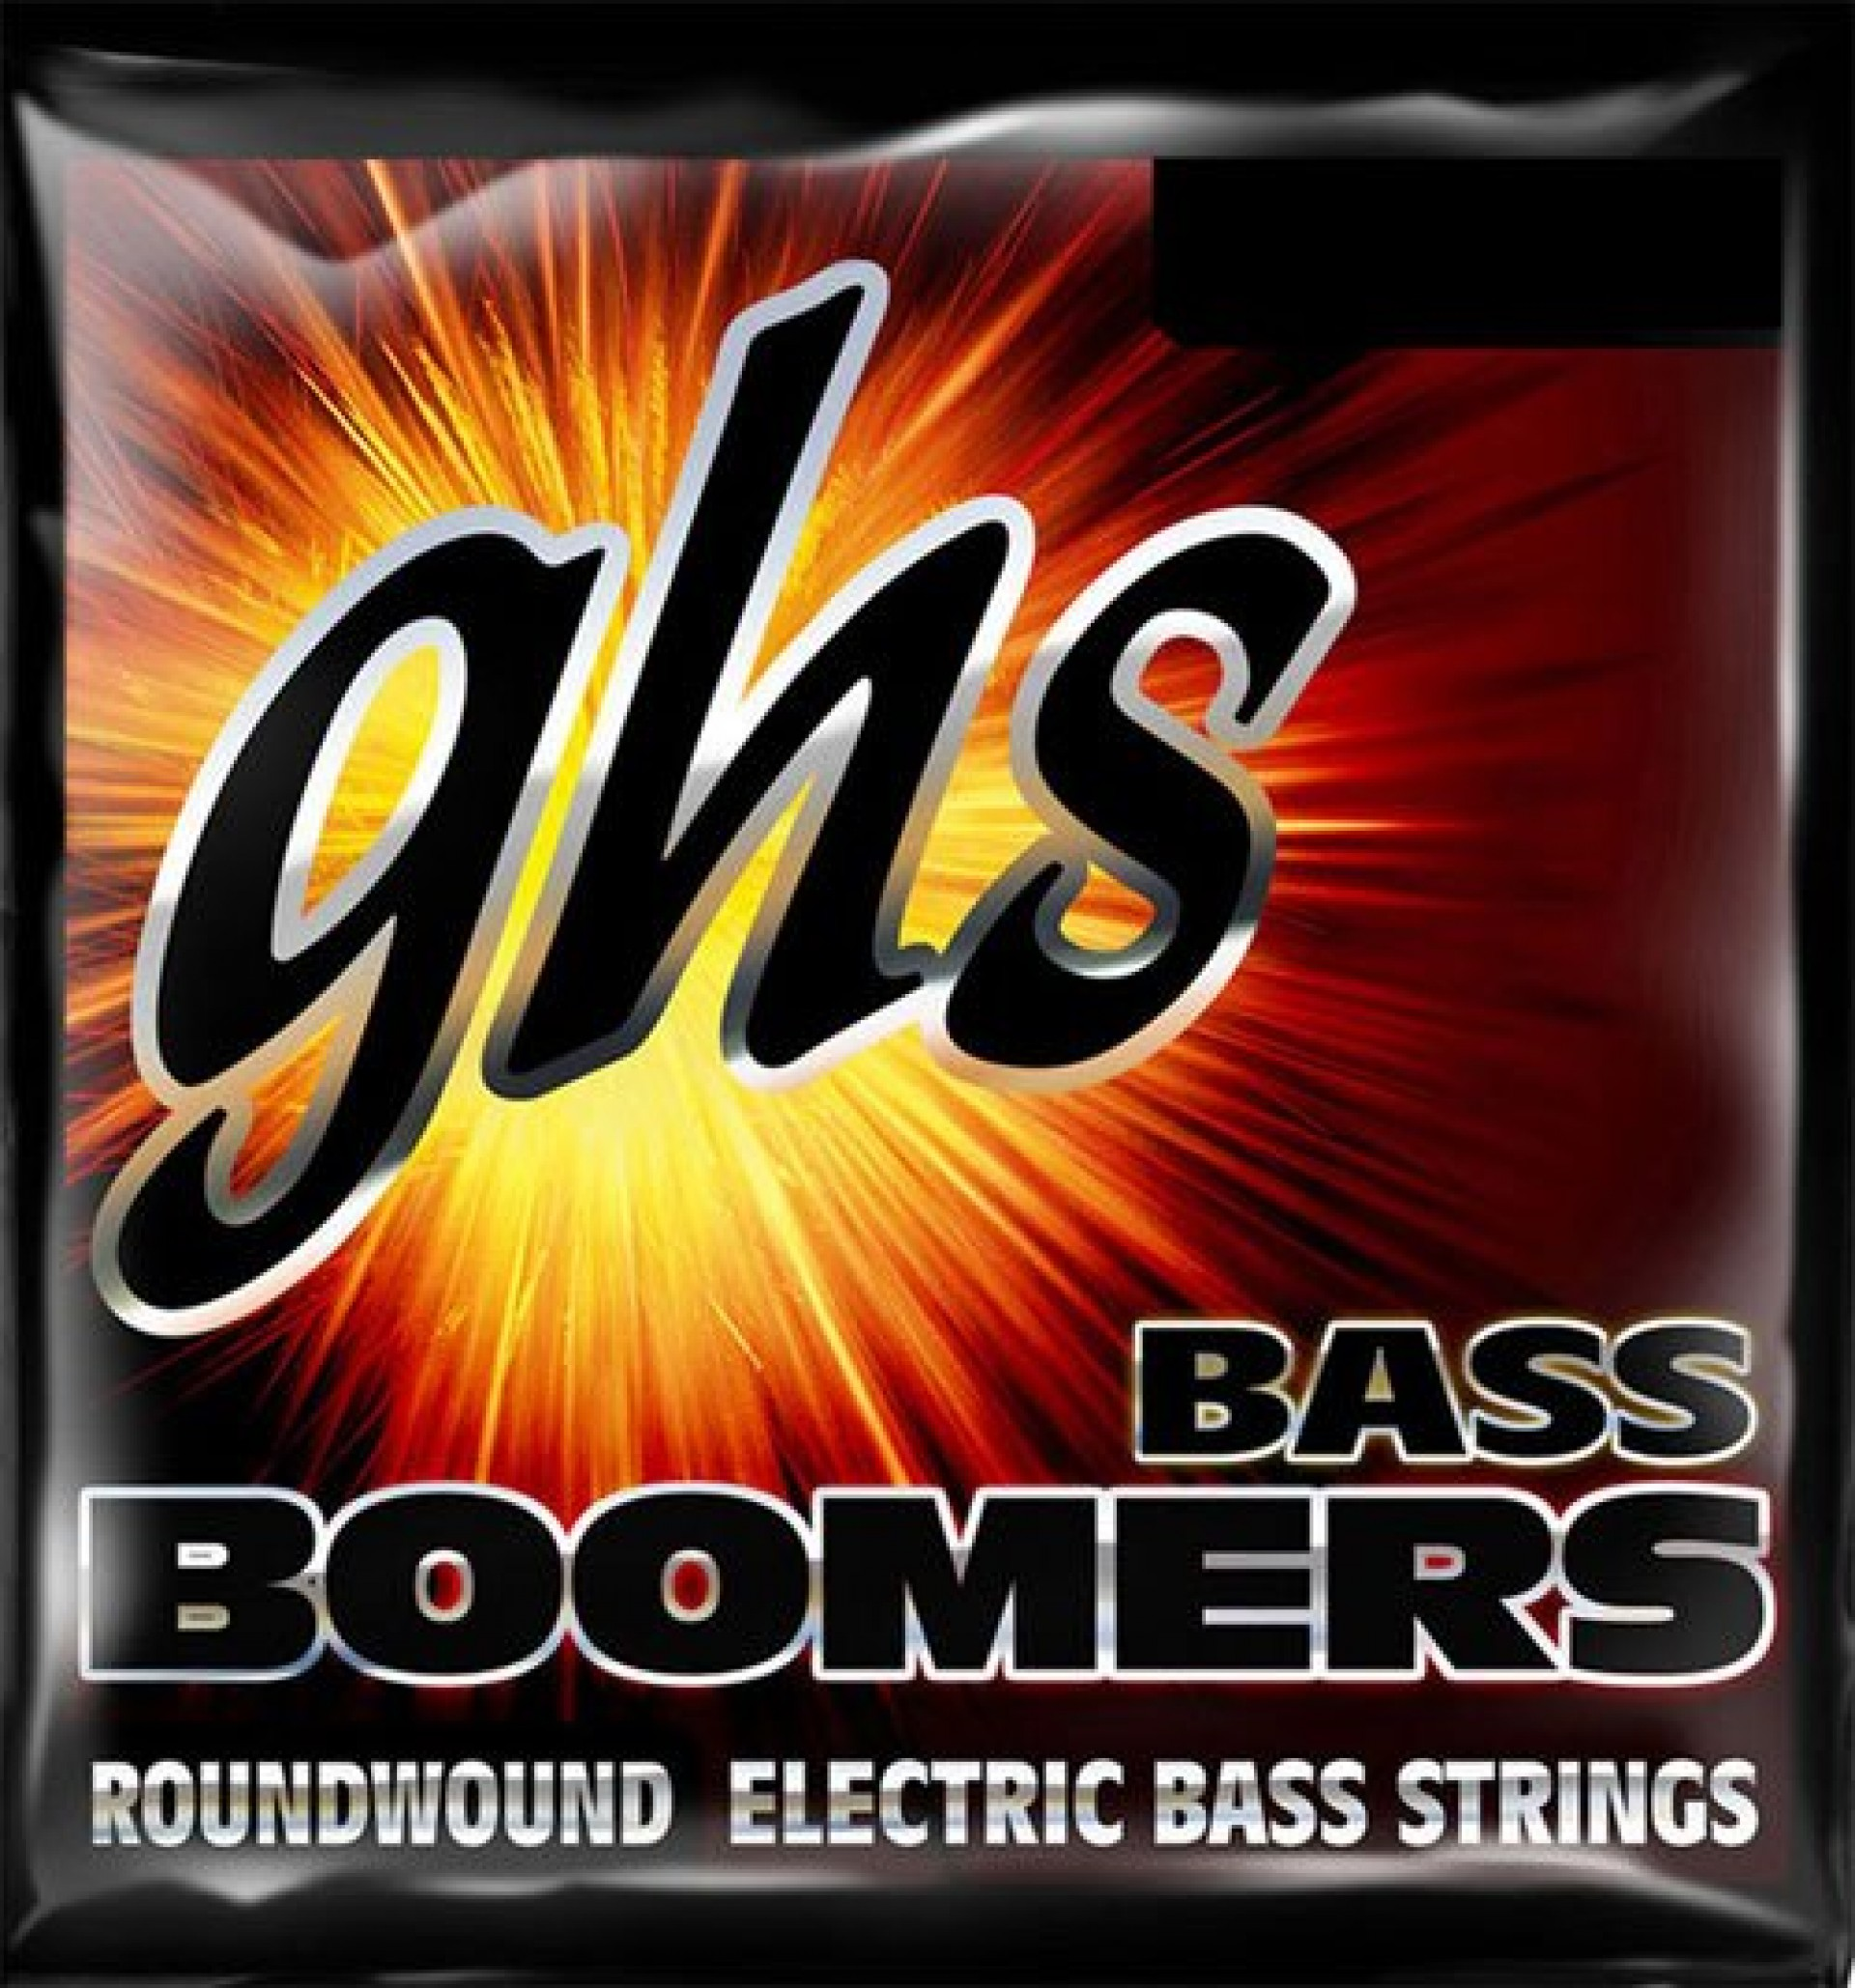 GHS 6ML-DYB Boomers Roundwound 6 String Bass Strings 30-125 Long Scale